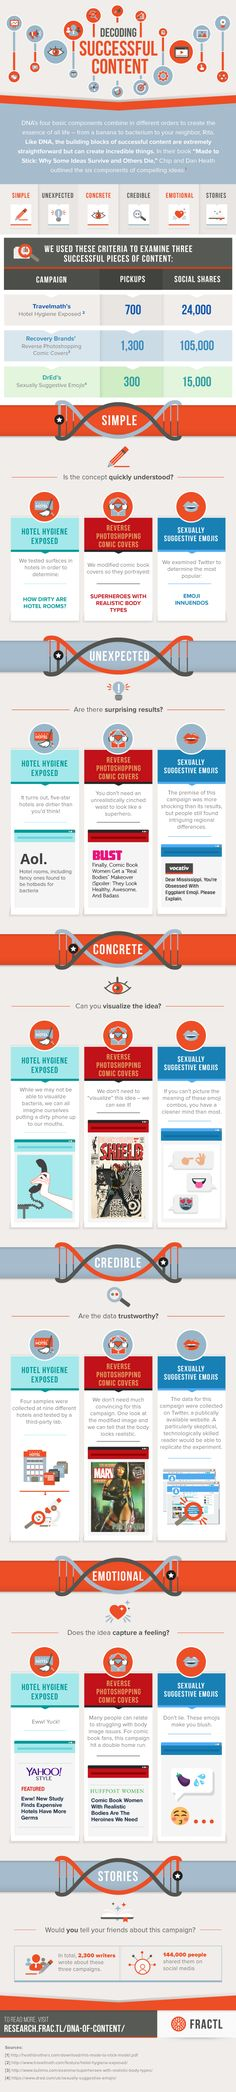 What Makes Content Compelling | Infographic from @AndreaMLehr | #ContentCreation | for HubSpot Marketing Blog by Andrea Lehr | Decoding Successful Content